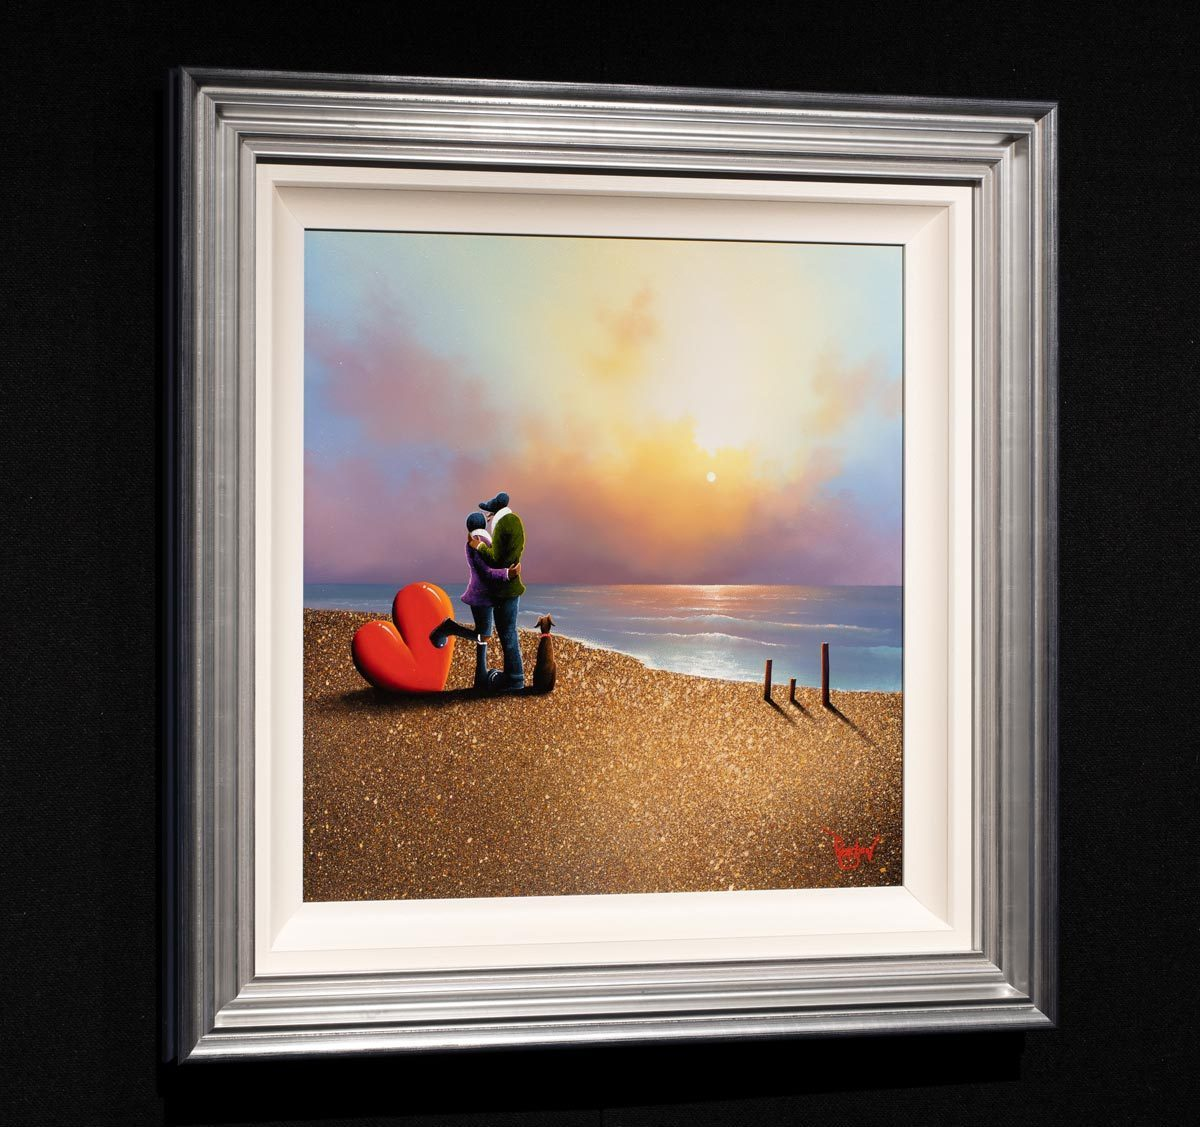 Loving Every Moment - Original David Renshaw Framed